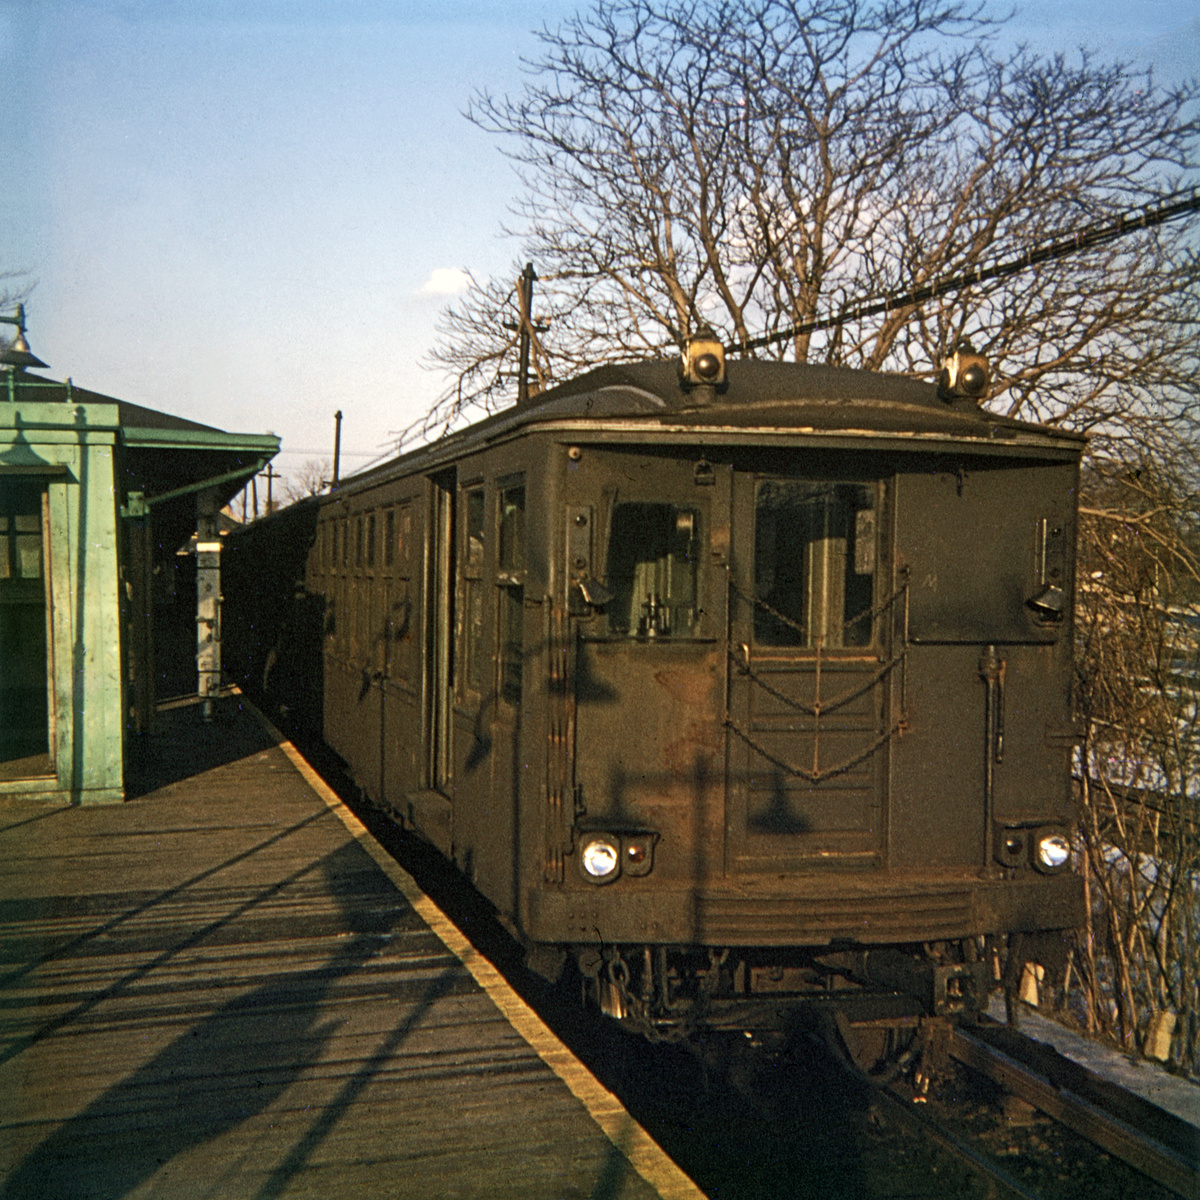 (530k, 1044x849)<br><b>Country:</b> United States<br><b>City:</b> New York<br><b>System:</b> New York City Transit<br><b>Line:</b> BMT Myrtle Avenue Line<br><b>Location:</b> Metropolitan Avenue <br><b>Car:</b> BMT Q  <br><b>Photo by:</b> Steve Hoskins<br><b>Collection of:</b> David Pirmann<br><b>Date:</b> 1/1967<br><b>Viewed (this week/total):</b> 0 / 3085